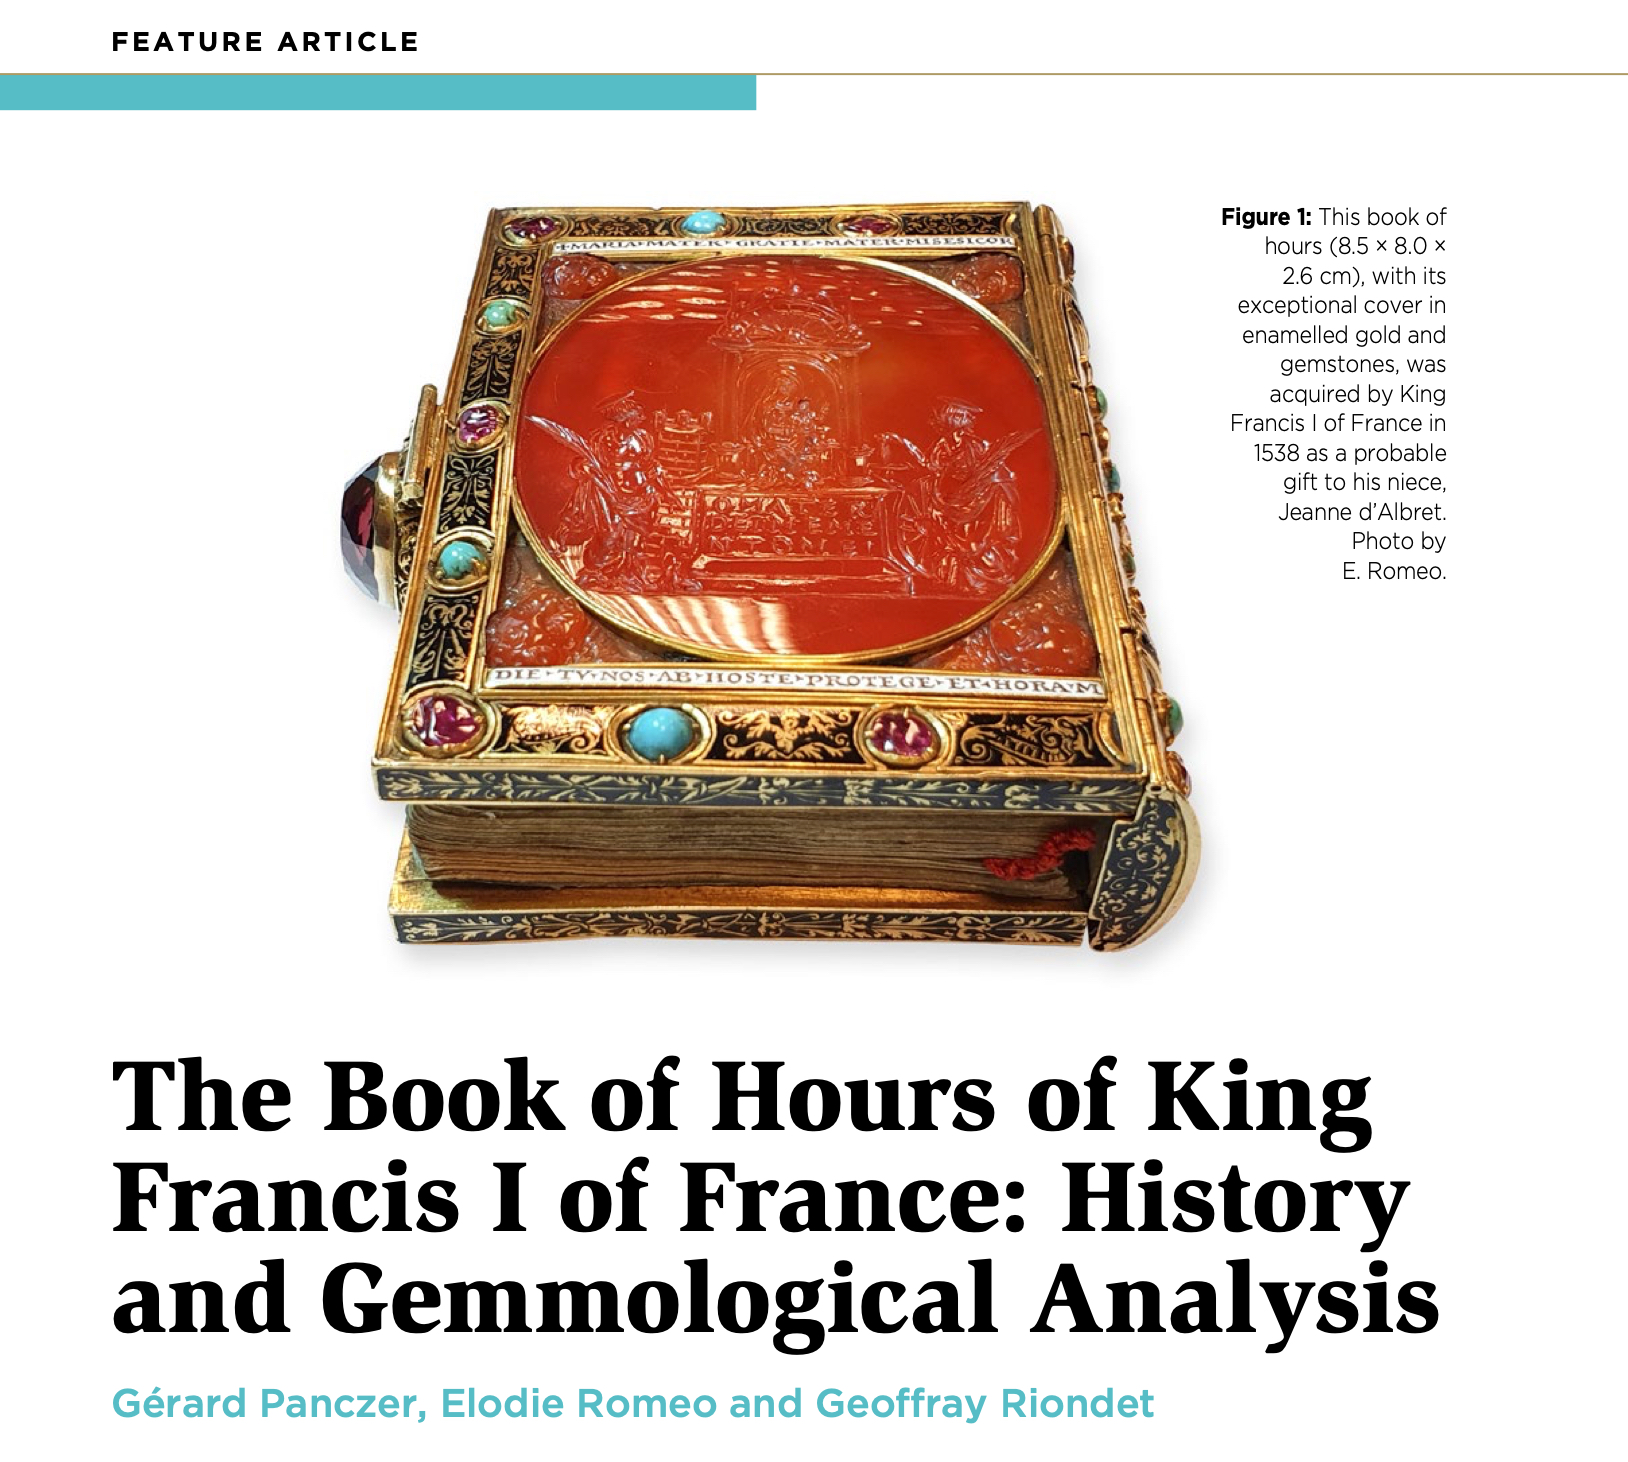 « The Book of Hours of King Francis I of France : History and Gemmological Analysis »